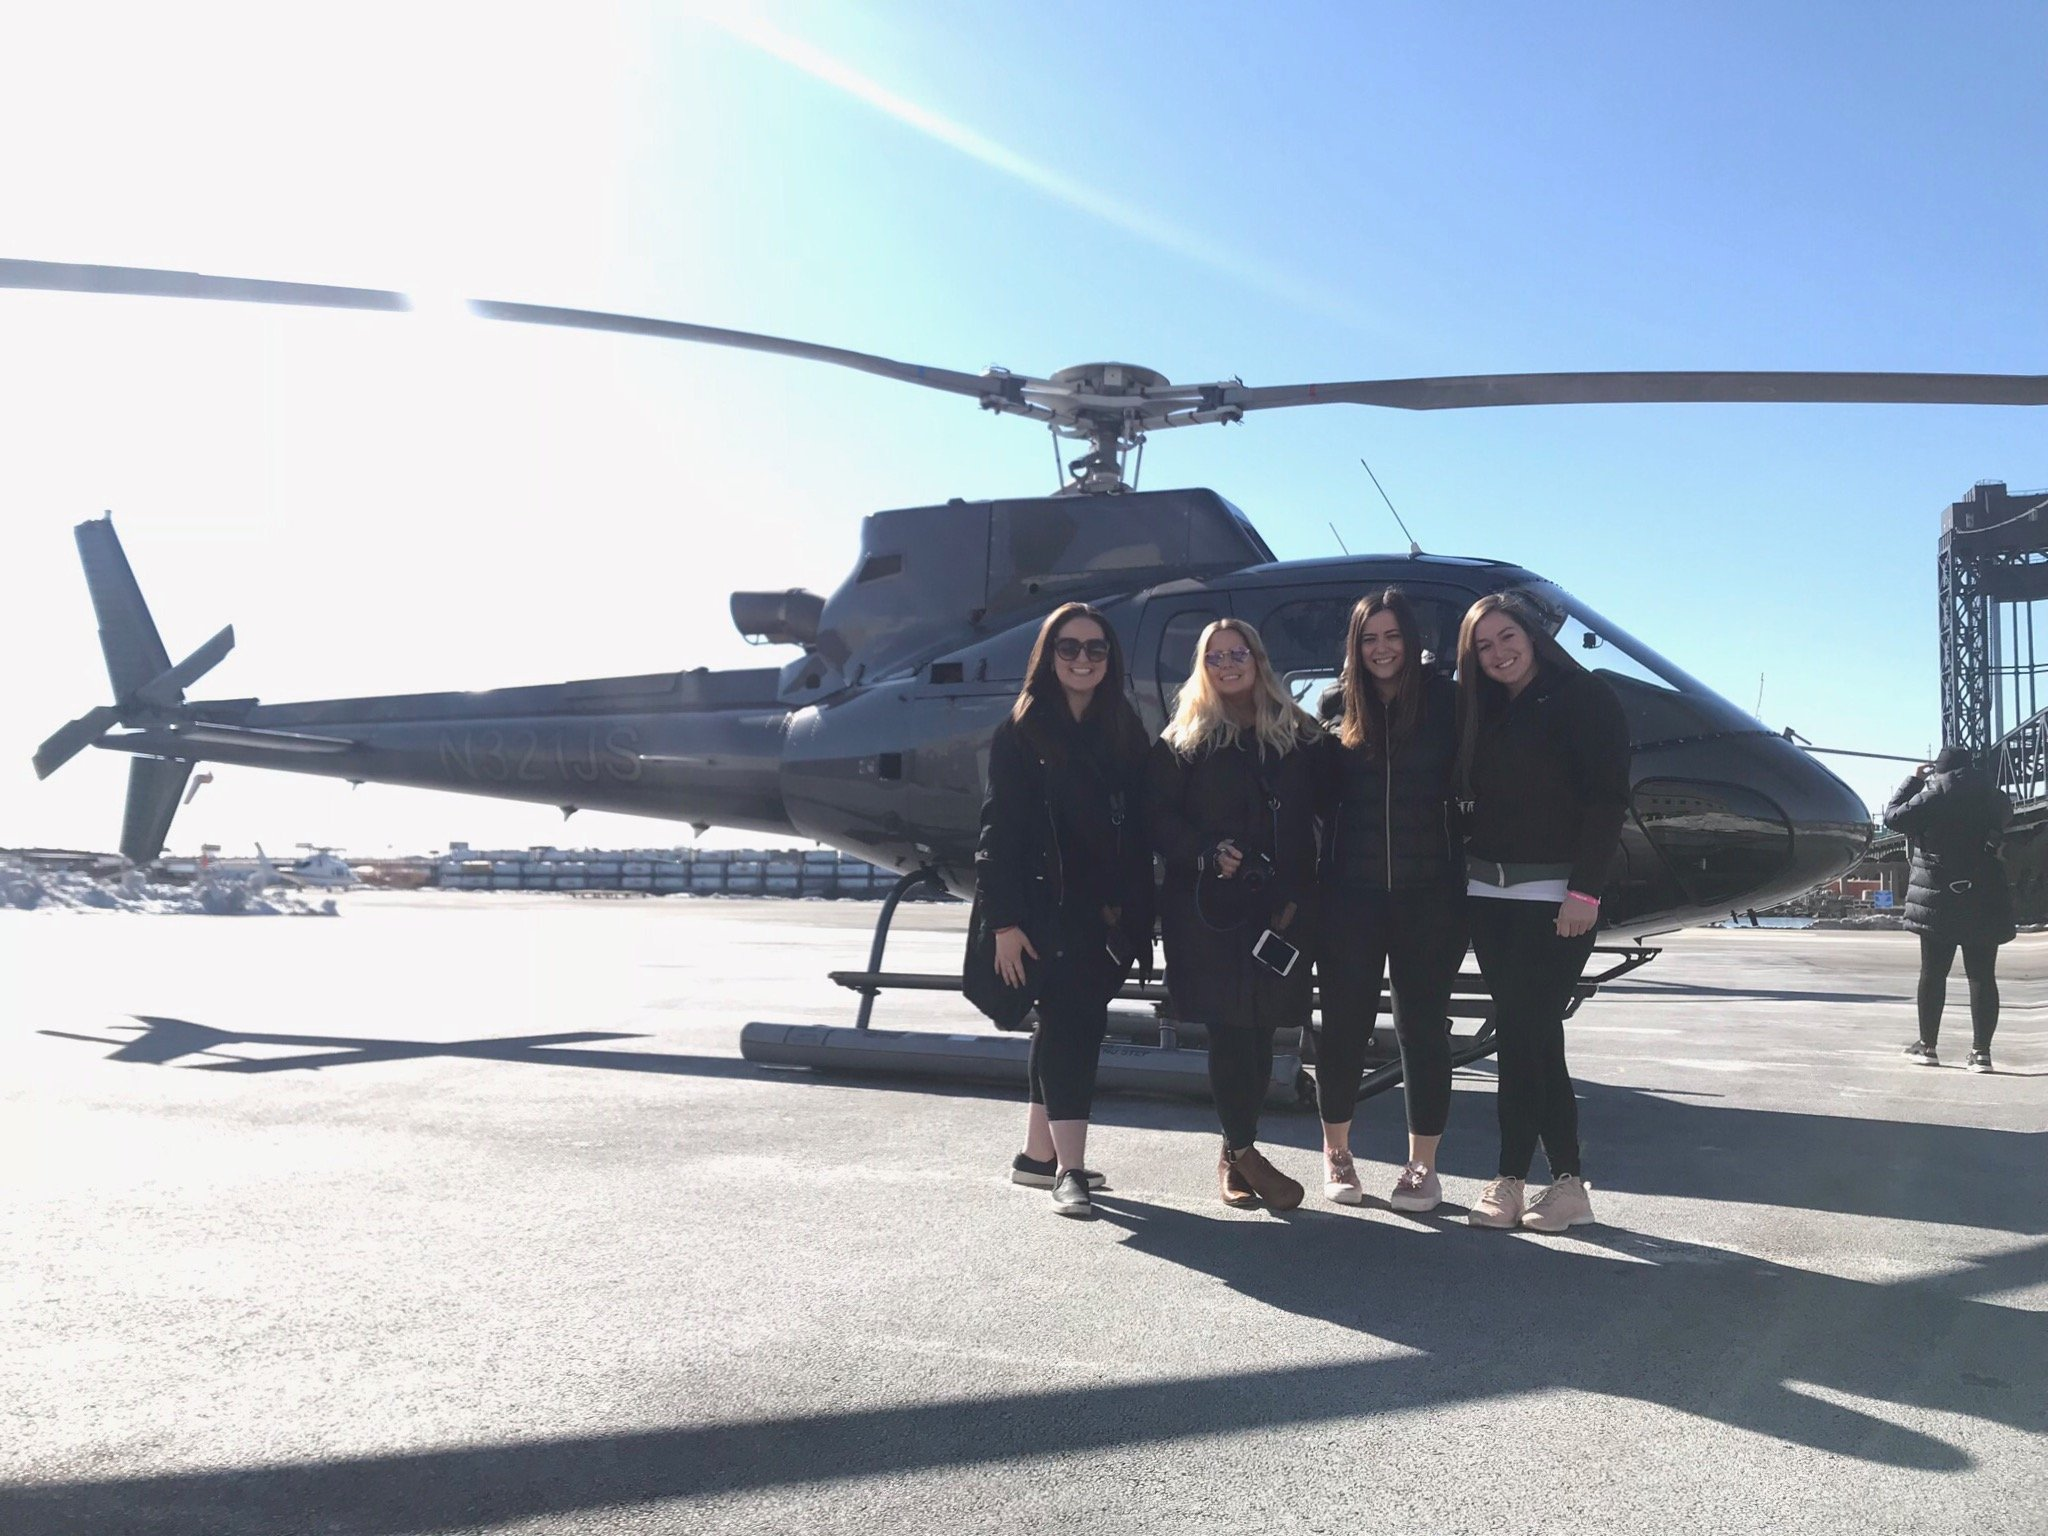 NYC Helicopter Ride with FlyNYON | NYC Helicopter Tour Review FLYNYON| Female Travel & Lifestyle Blog New York City Helicopter Ride